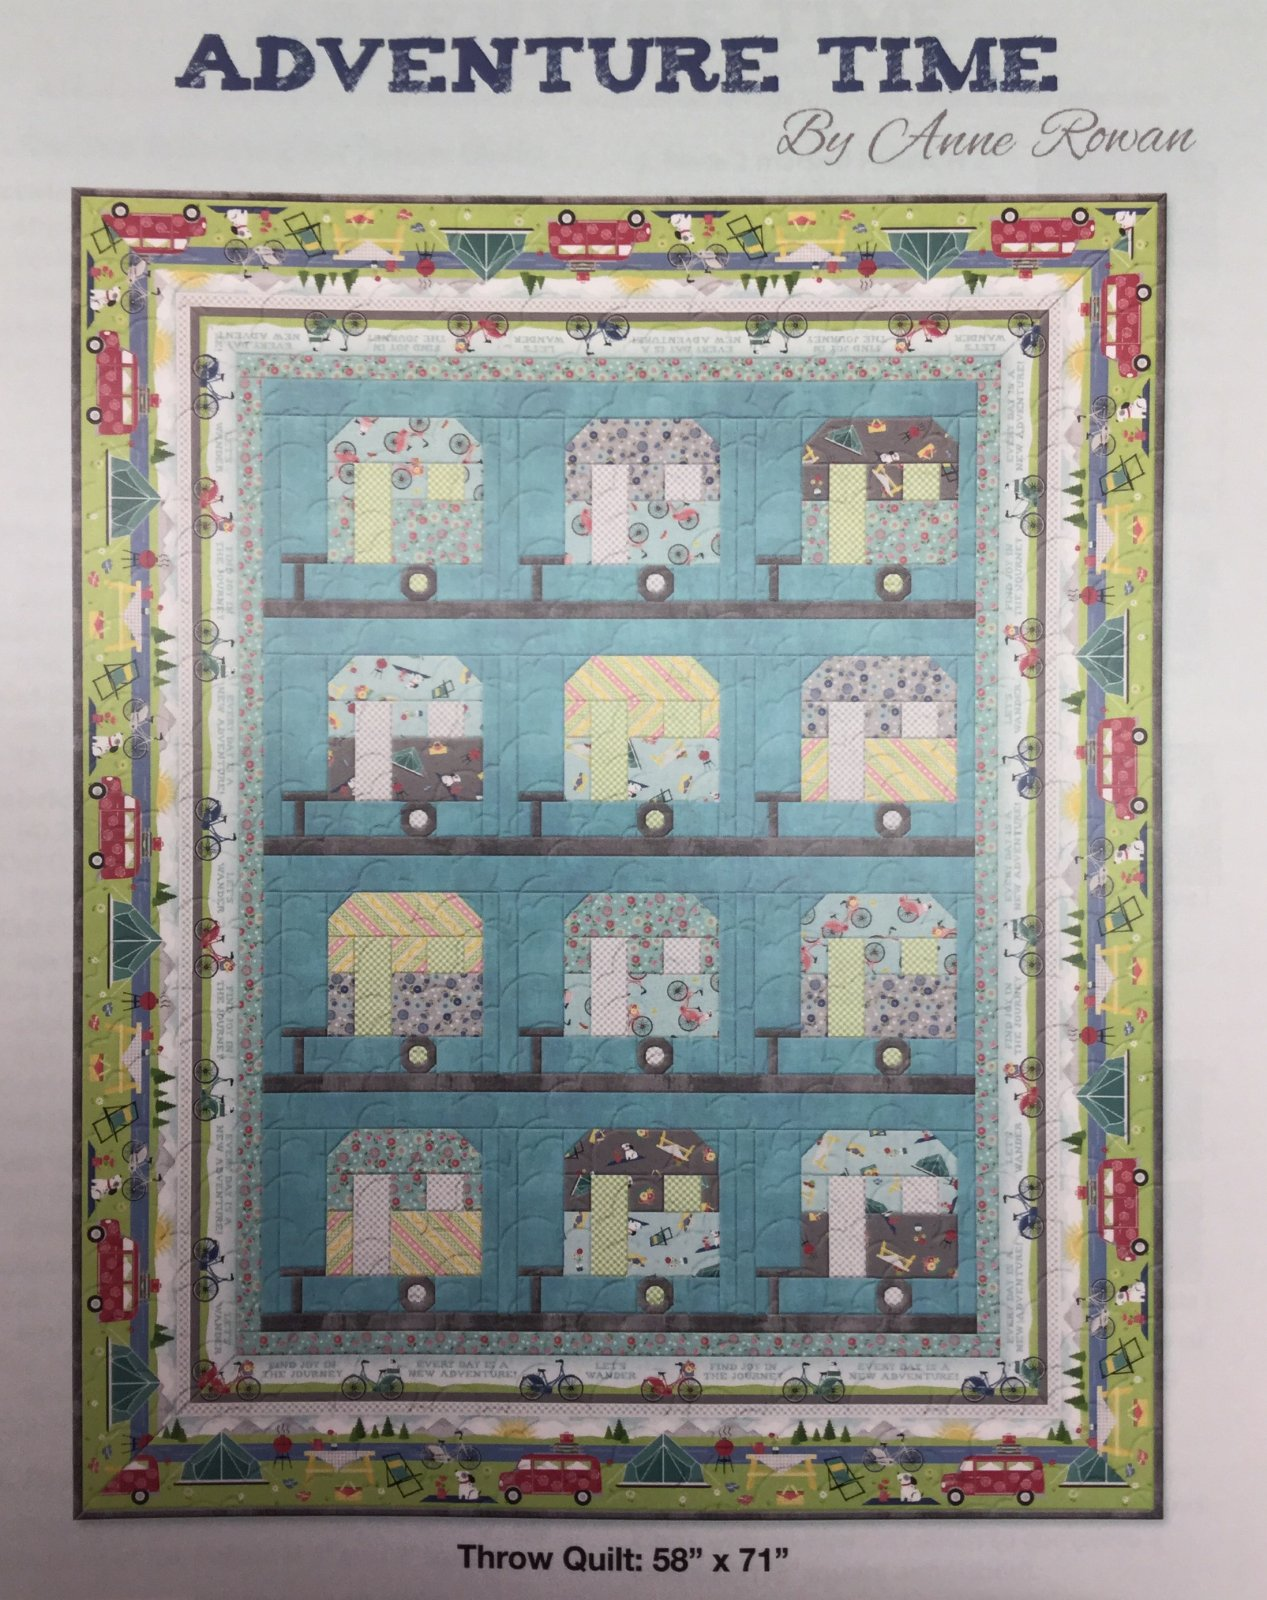 Adventure Time Throw Quilt Kit 58x71